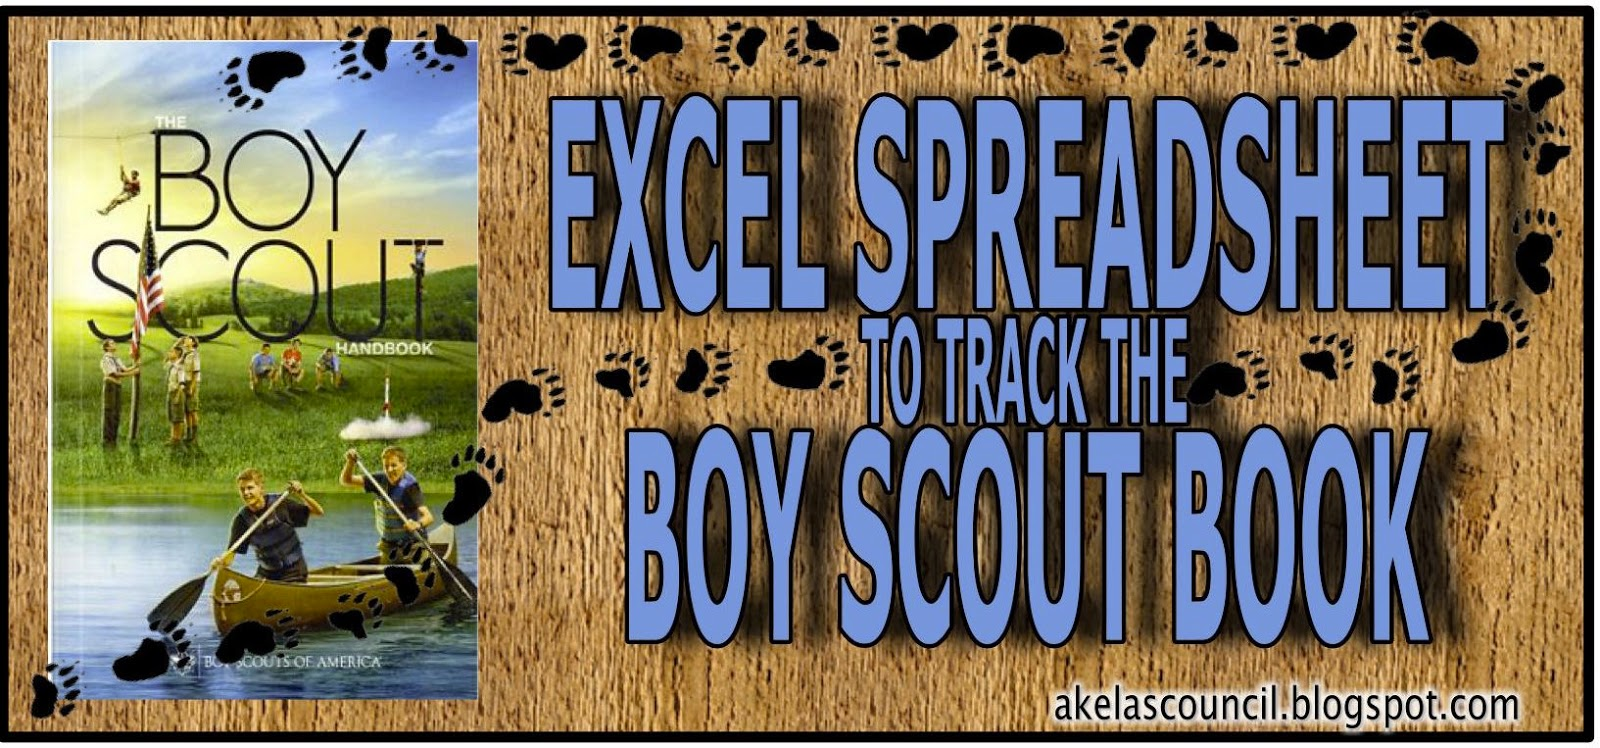 Akelas Council Cub Scout Leader Training Excel Spreadsheet to – Eagle Scout Requirements Worksheet